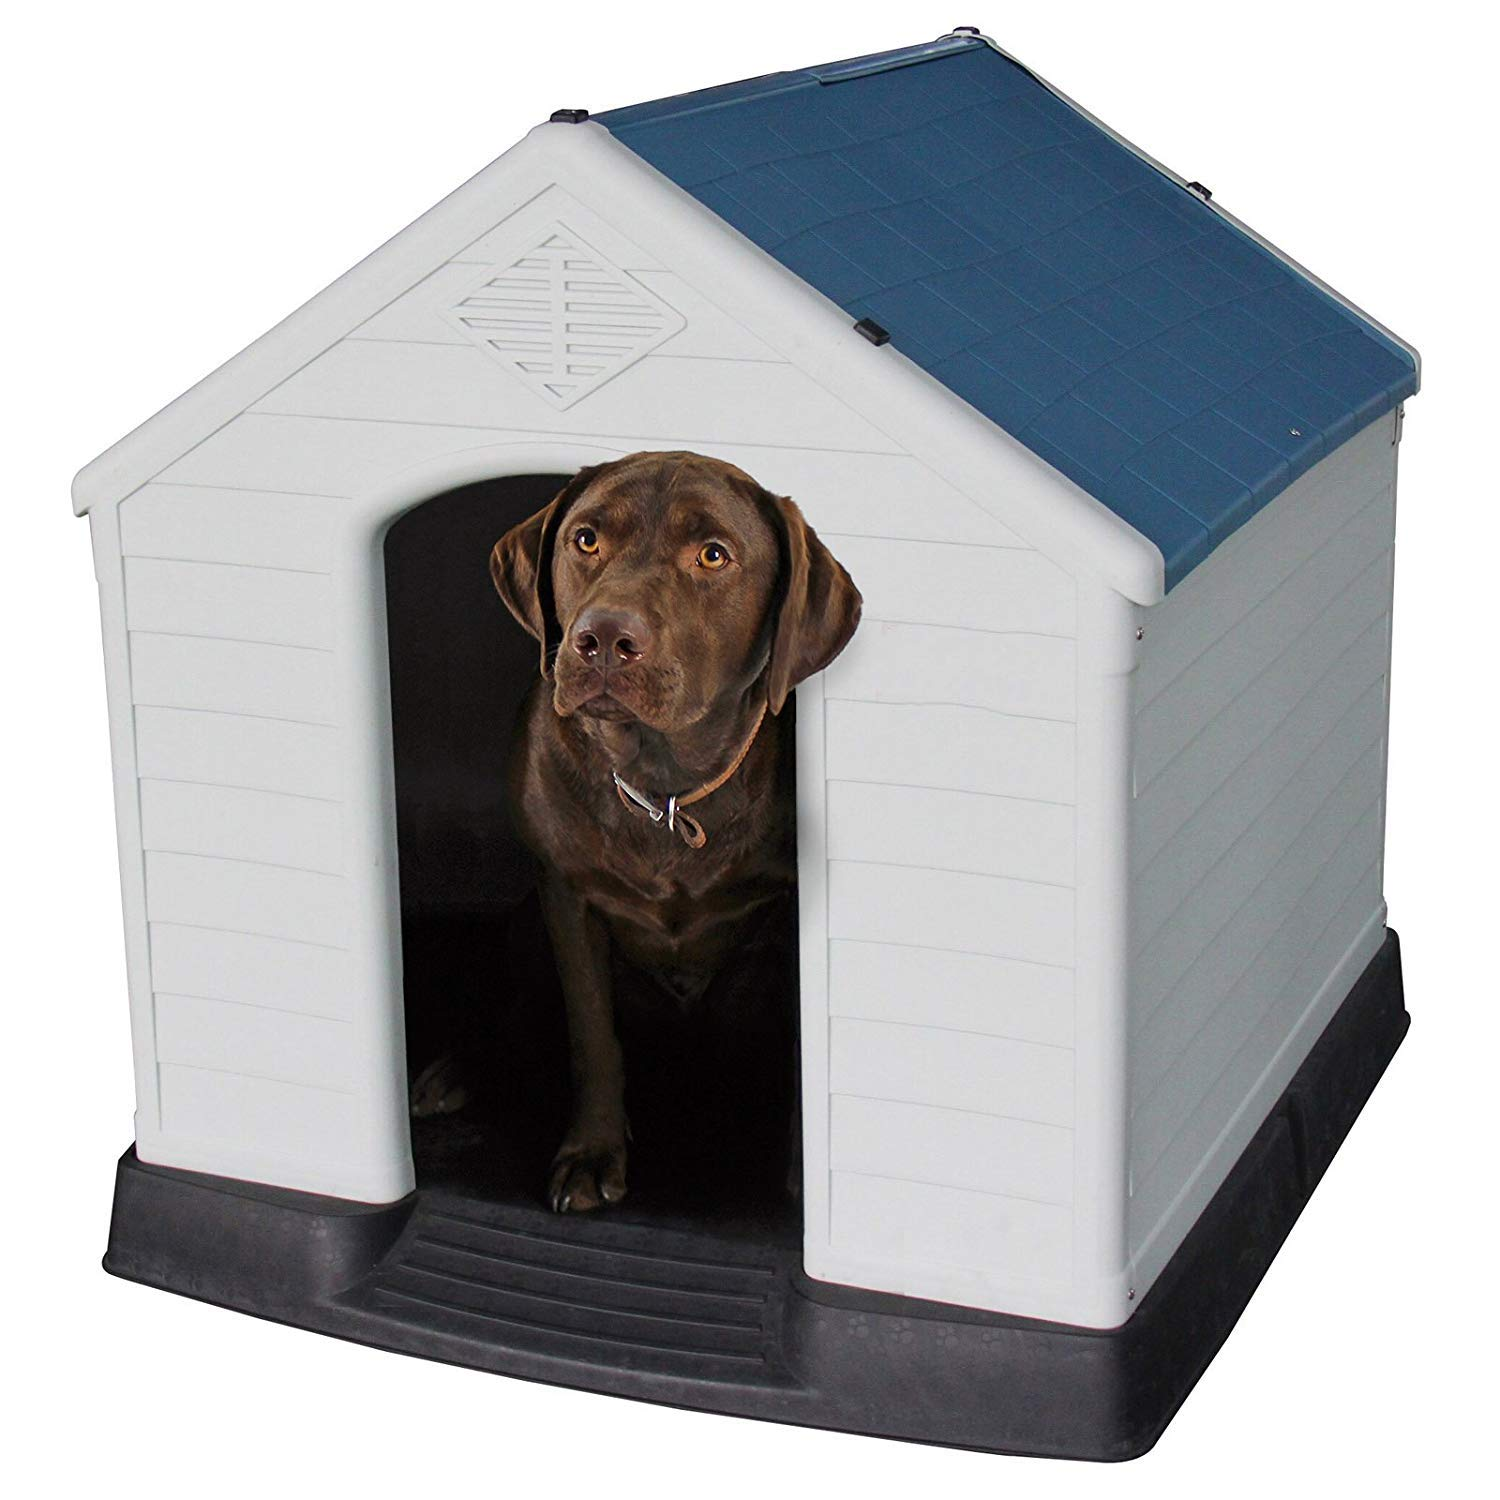 bluee Small bluee Small Large Dog Kennel,Indoor Outdoor Dog,Kennel,Windproof Dog Kennel,Keep Your Pets Safe Dog House,Shed Home for Dogs,Big Dog Small Dog,Cat House,Feeding Kennel